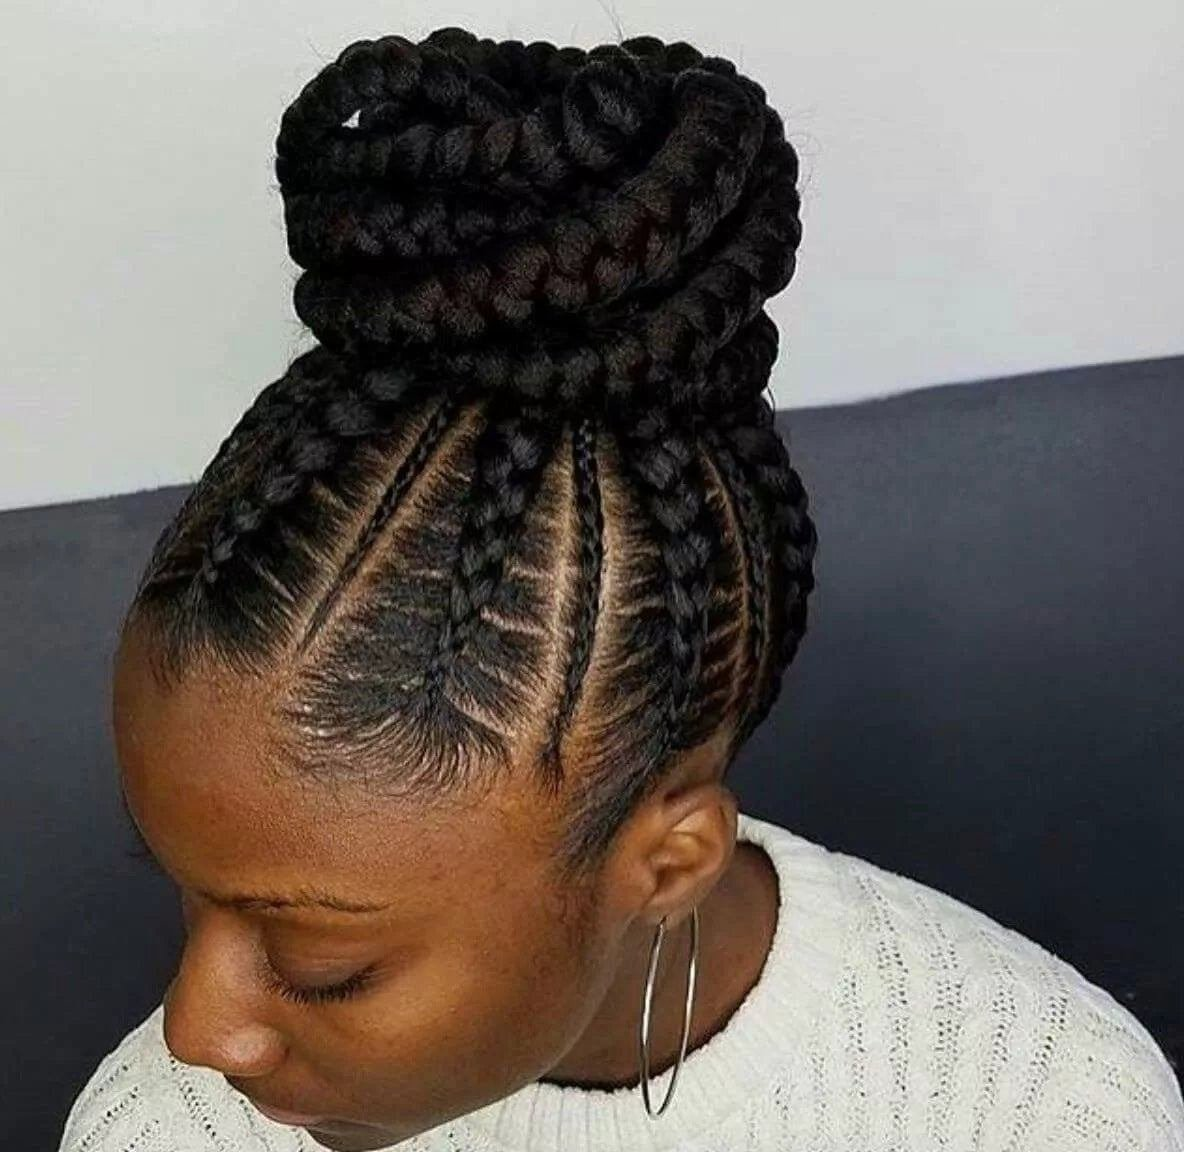 New Top 10 African Braiding Hairstyles For Ladies Photos Ideas With Pictures Original 1024 x 768